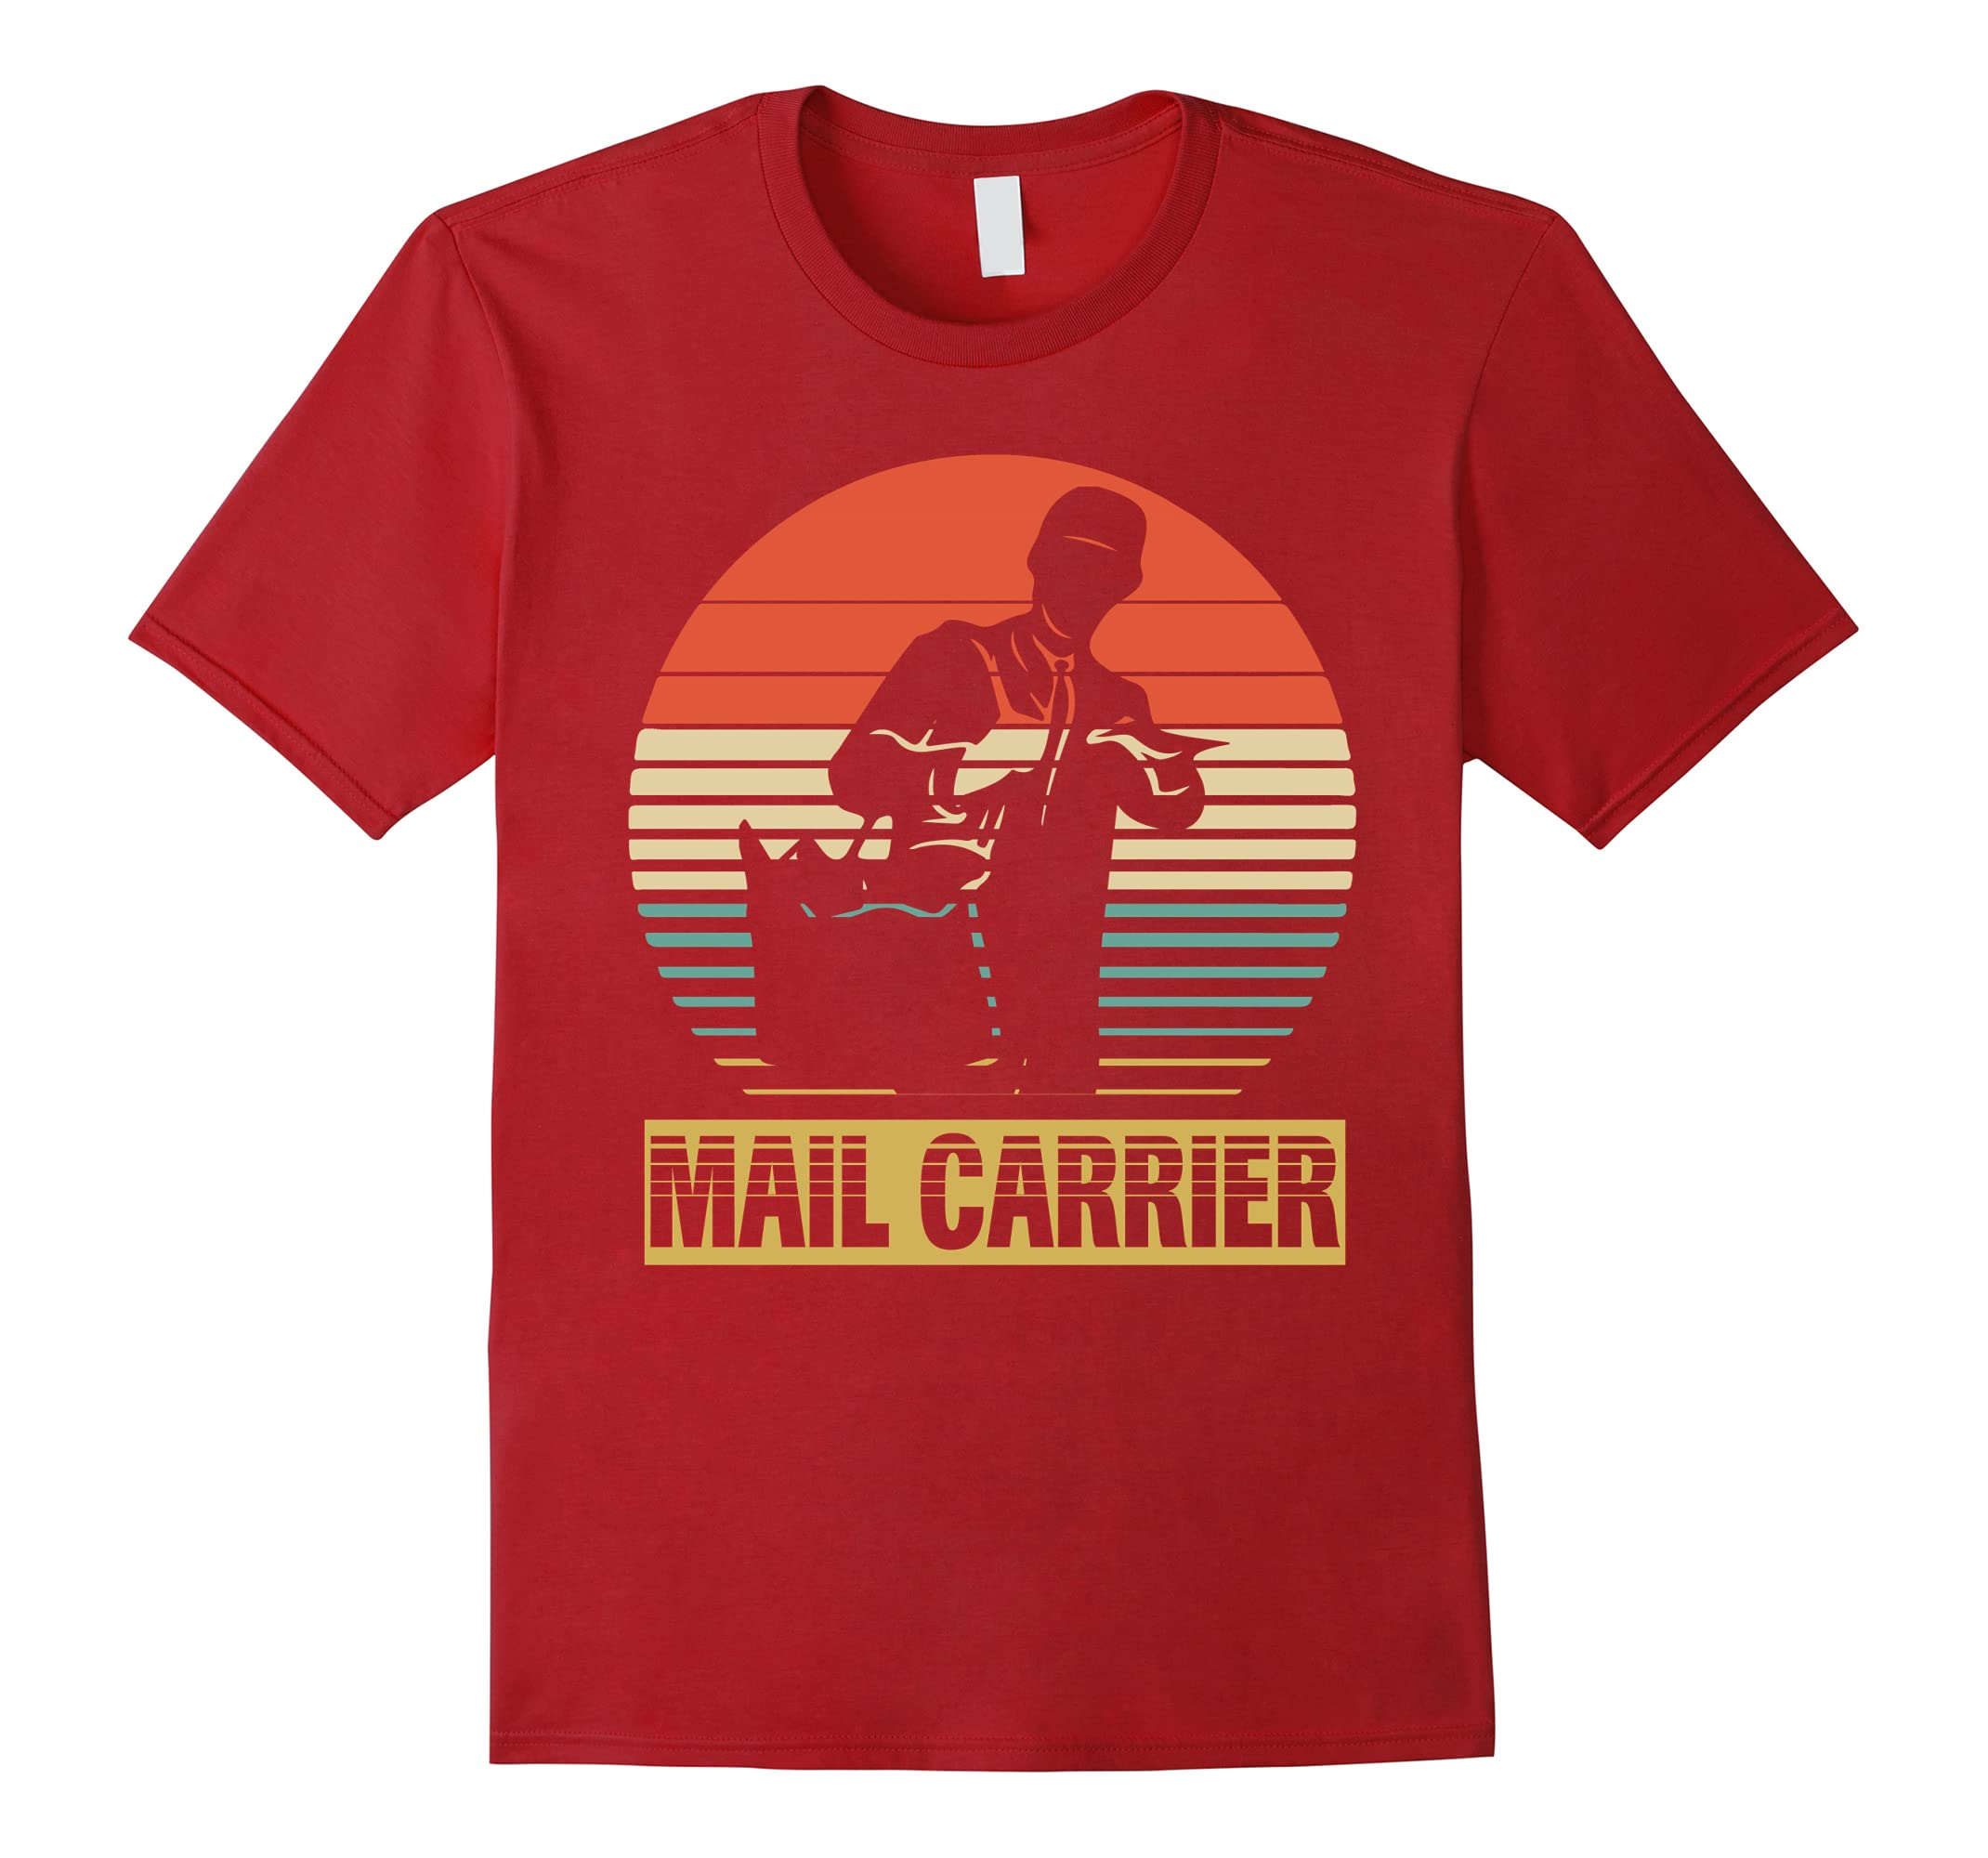 Vintage Shirt For Mail Carrier Birthday Gifts Ideal Ah My One Gift